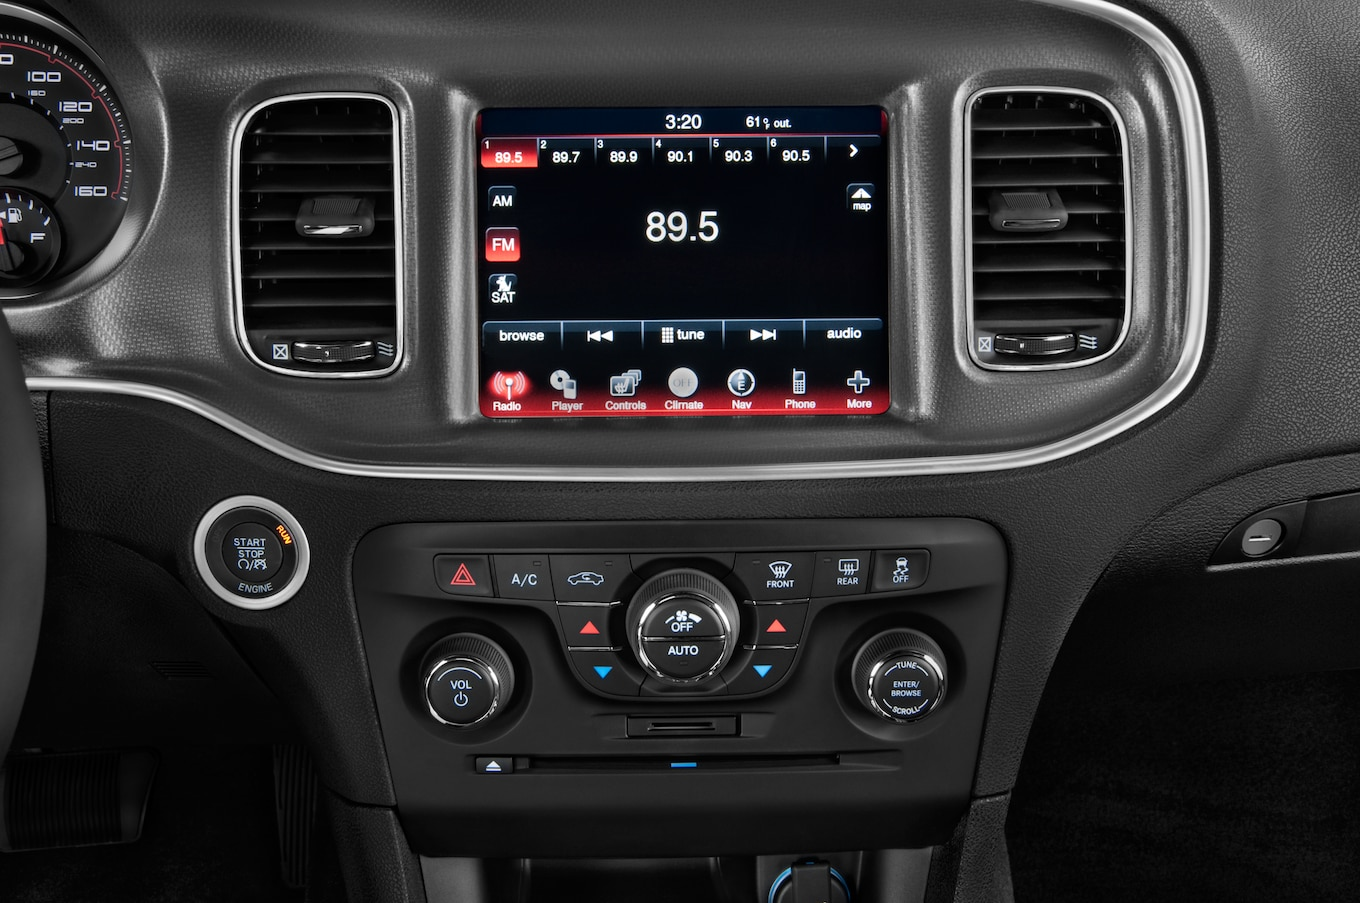 2014 Challenger Radio Wiring Diagram 2012 Dodge Charger Reviews And Rating Motor Trend